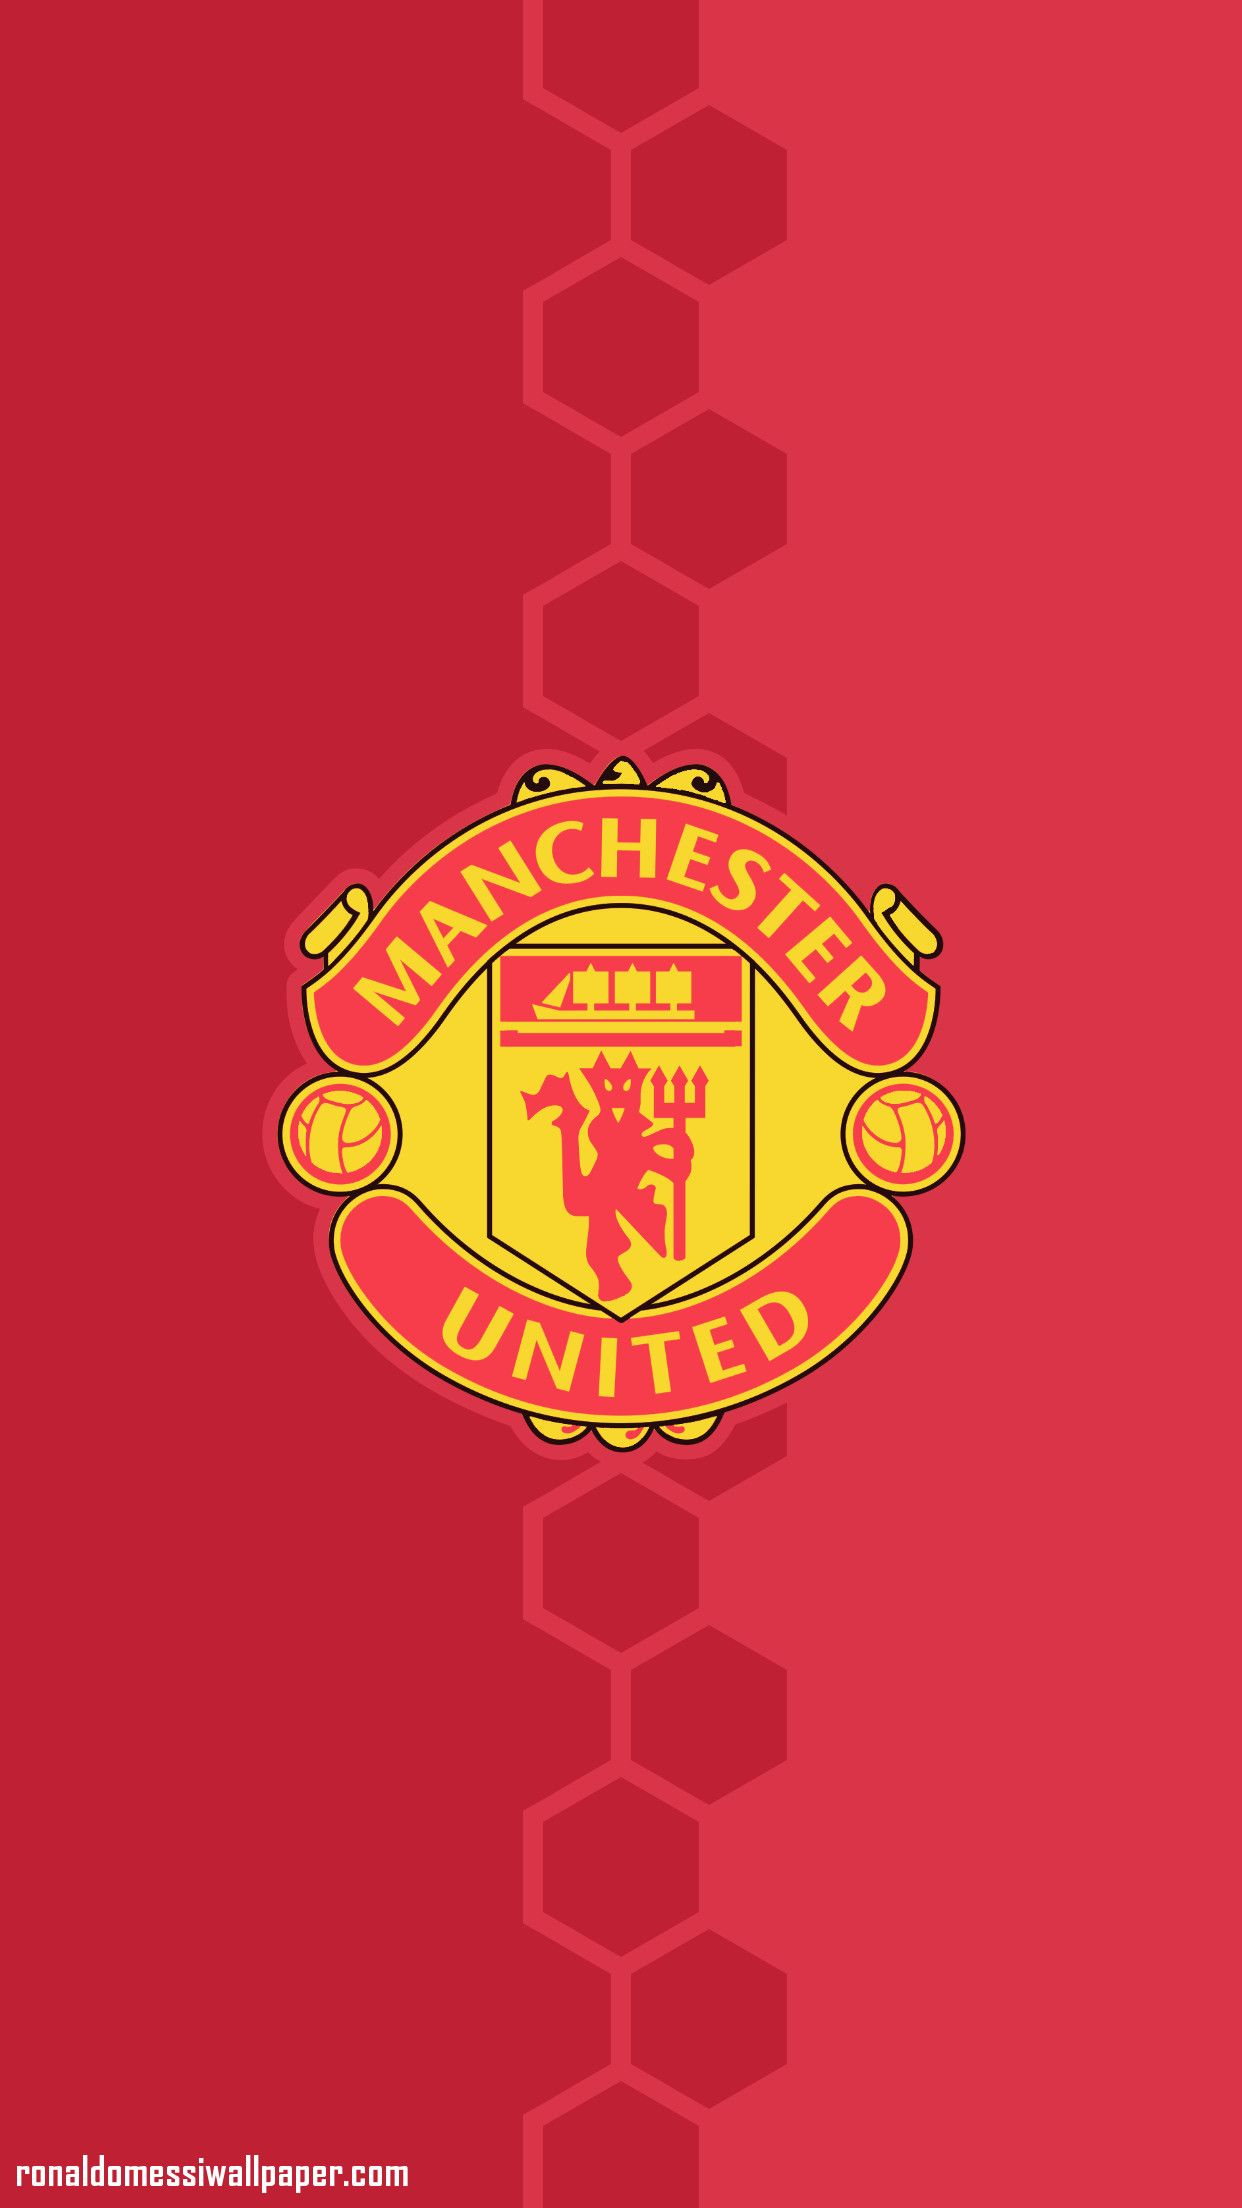 Adidas Manchester United Wallpapers On Wallpaperdog